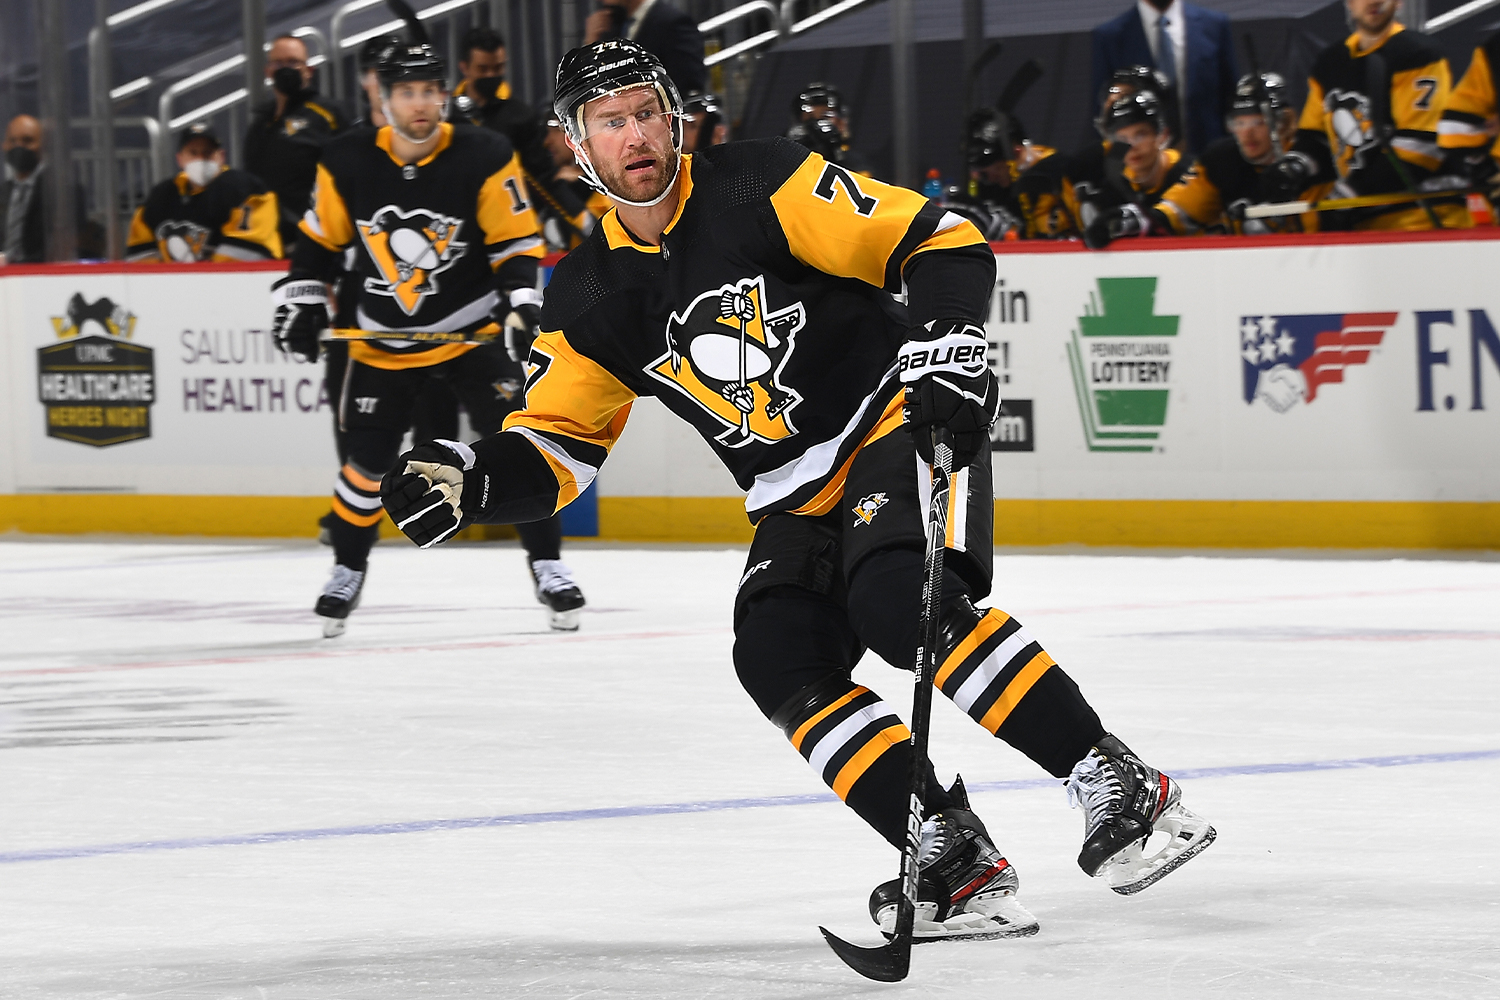 Jeff Carter #77 of the Pittsburgh Penguins skates against the Boston Bruins at PPG PAINTS Arena on April 27, 2021